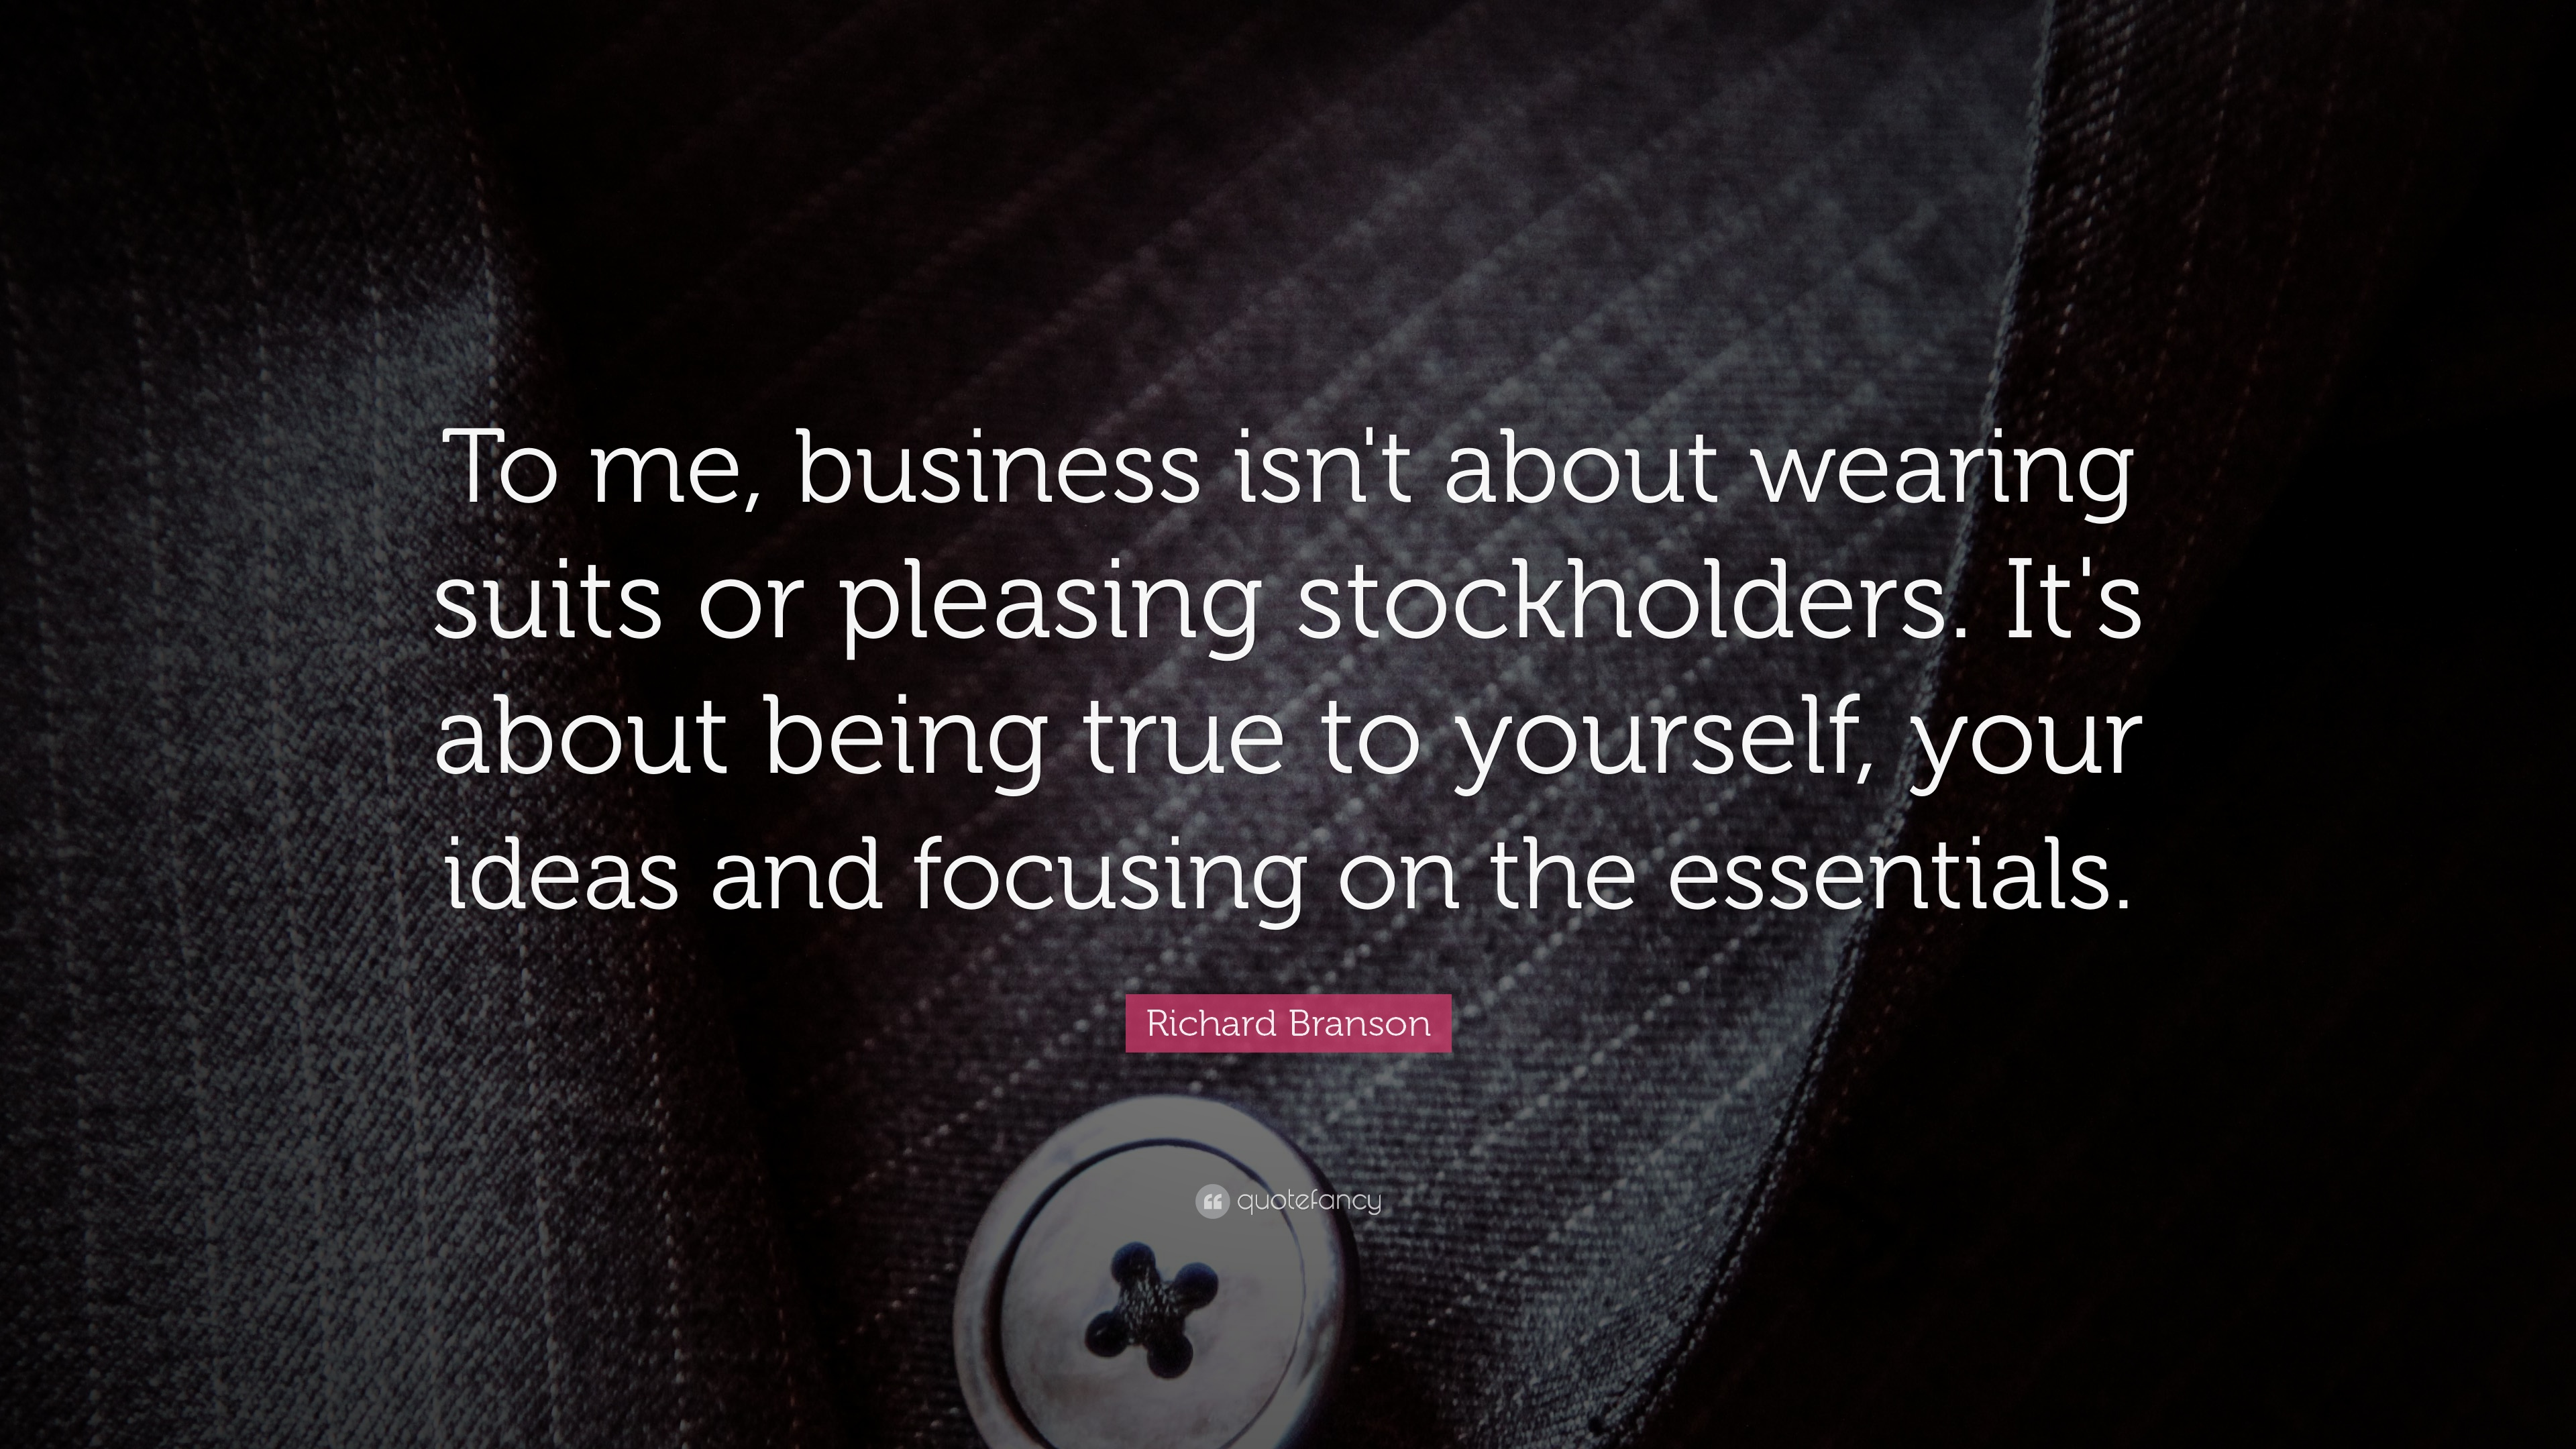 richard branson quote to me business isn t about wearing suits or pleasing stockholders it s about being true to yourself your ideas and fo 15 wallpapers quotefancy business isn t about wearing suits